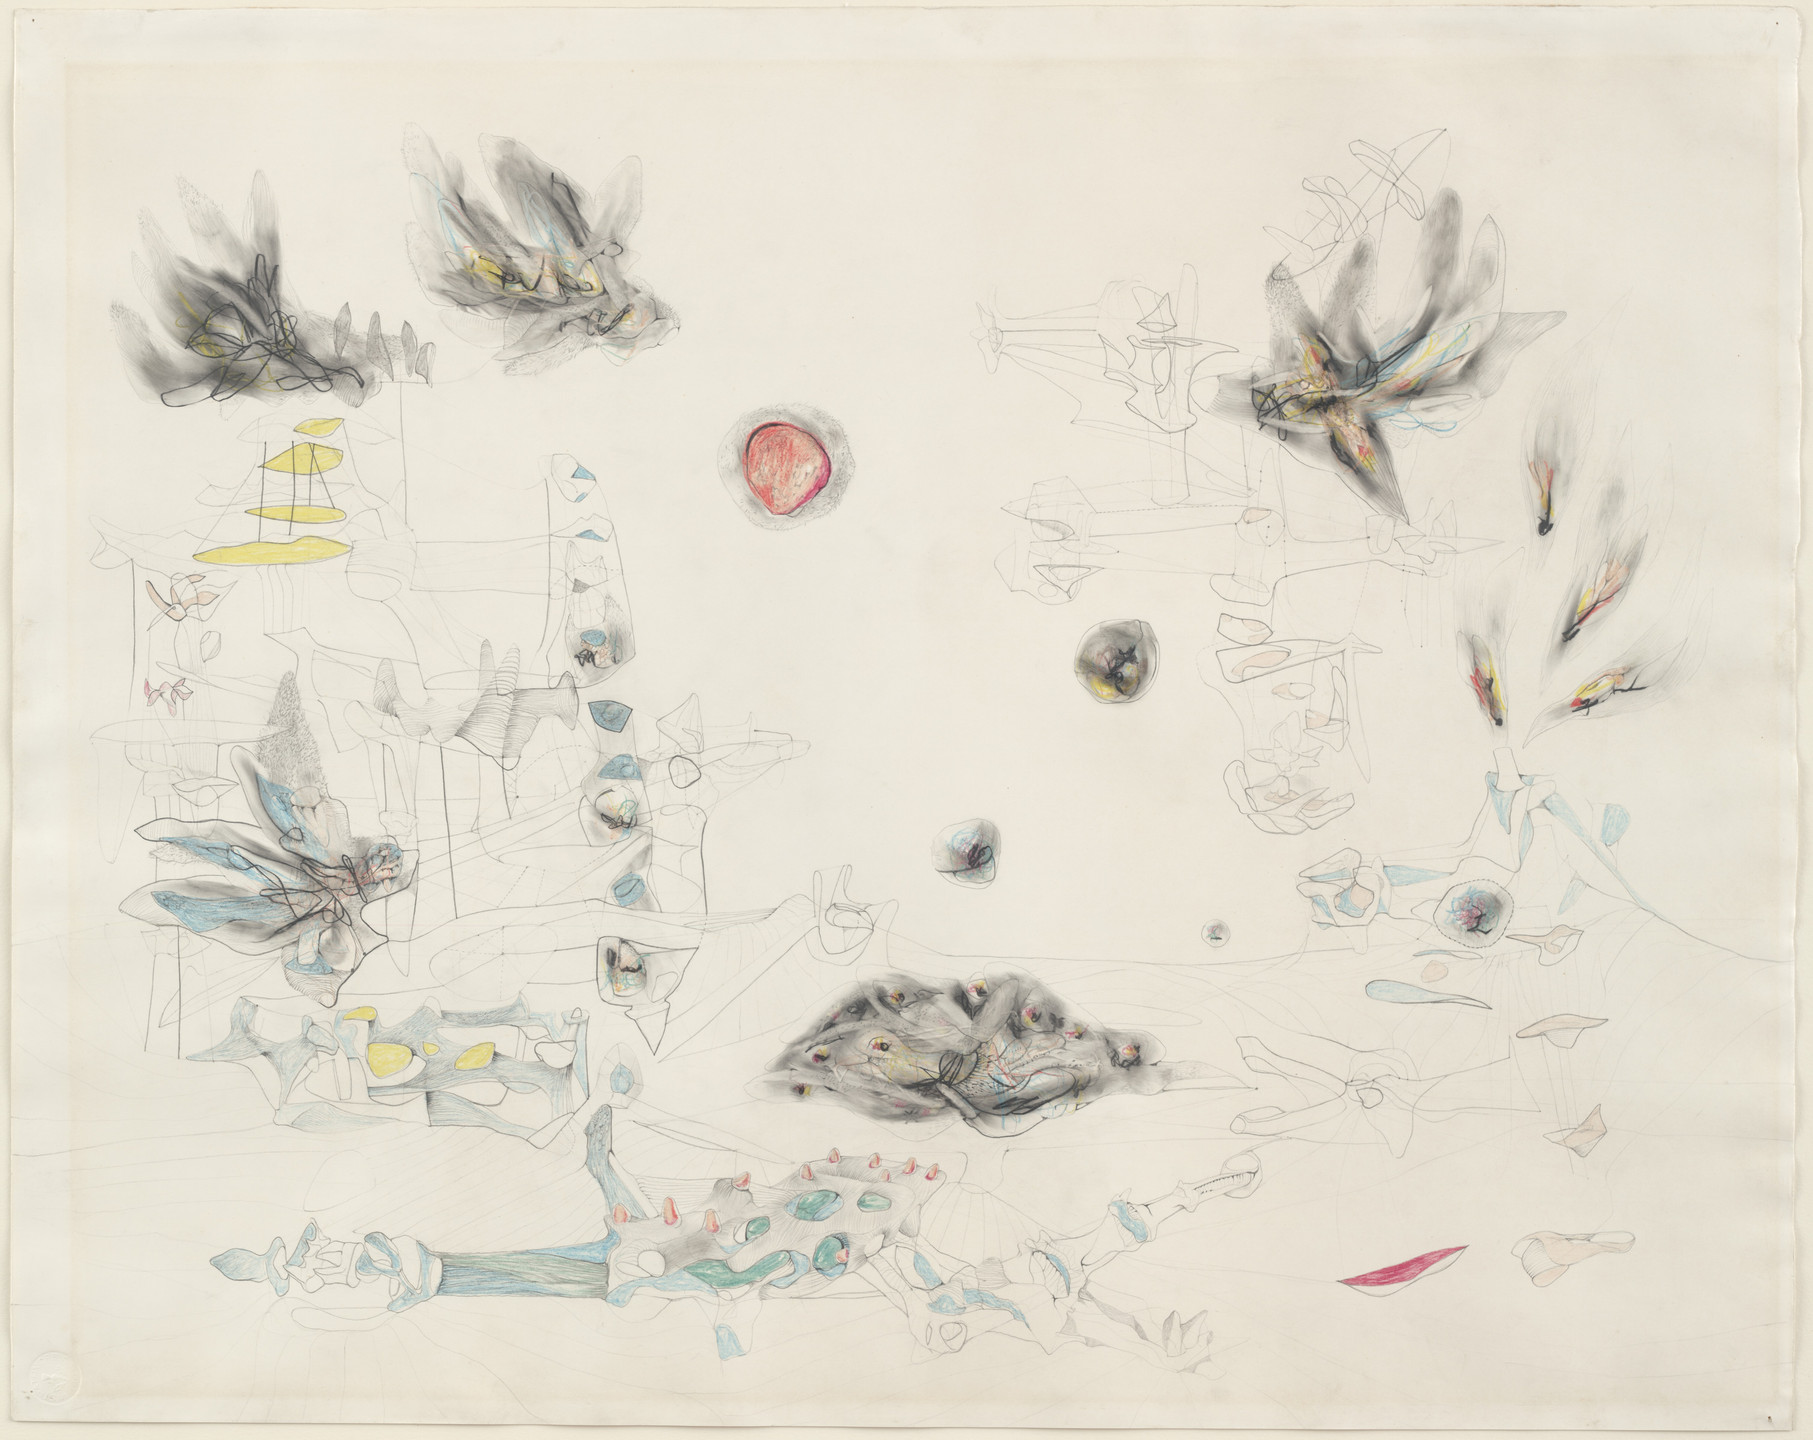 Roberto Matta. Condors and Carrion (Condors y carroña). 1941